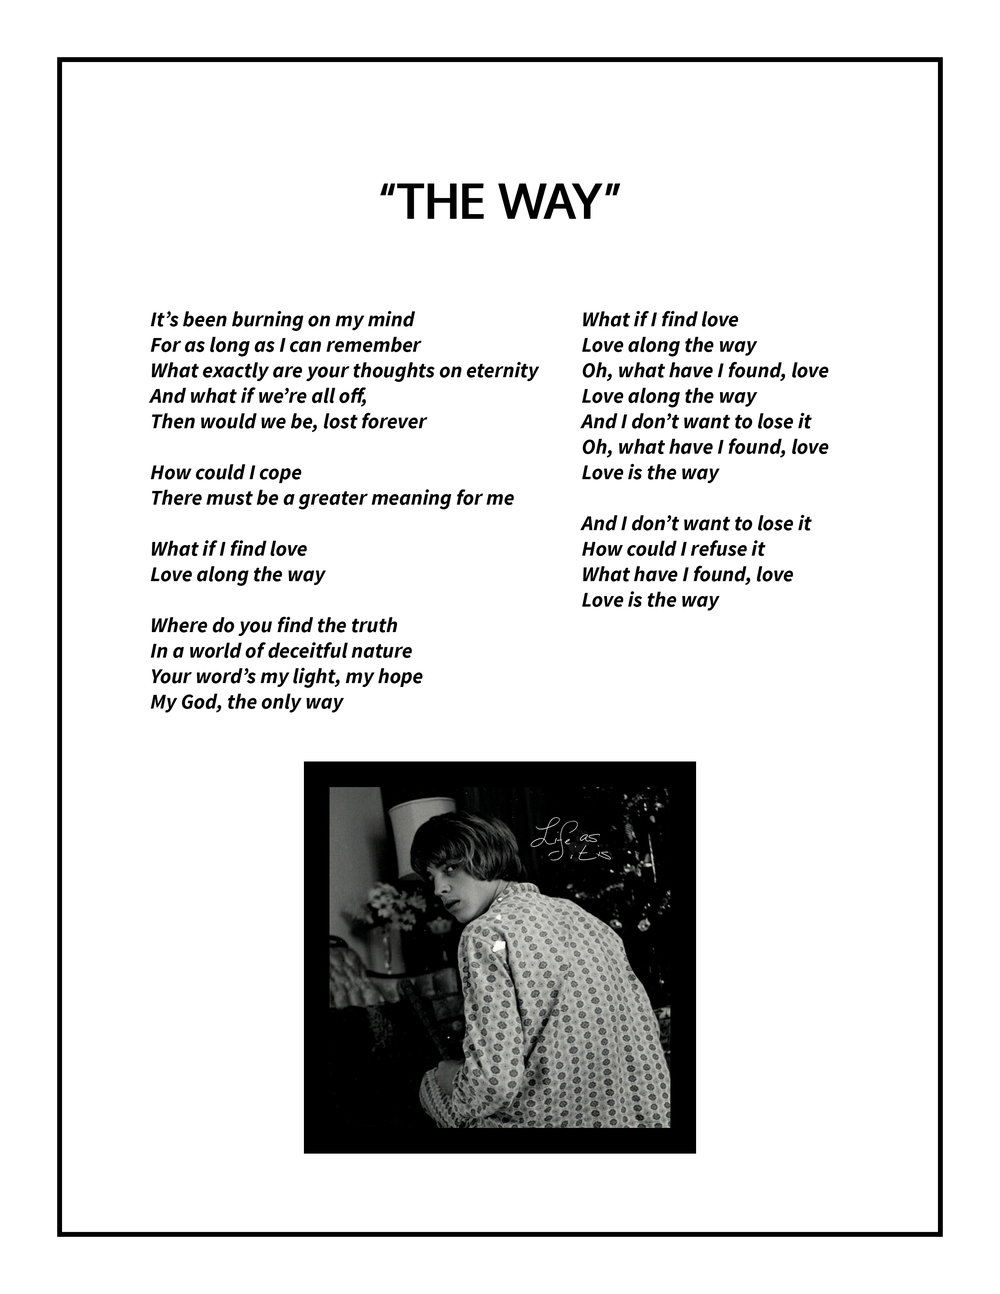 The Way Lyrics